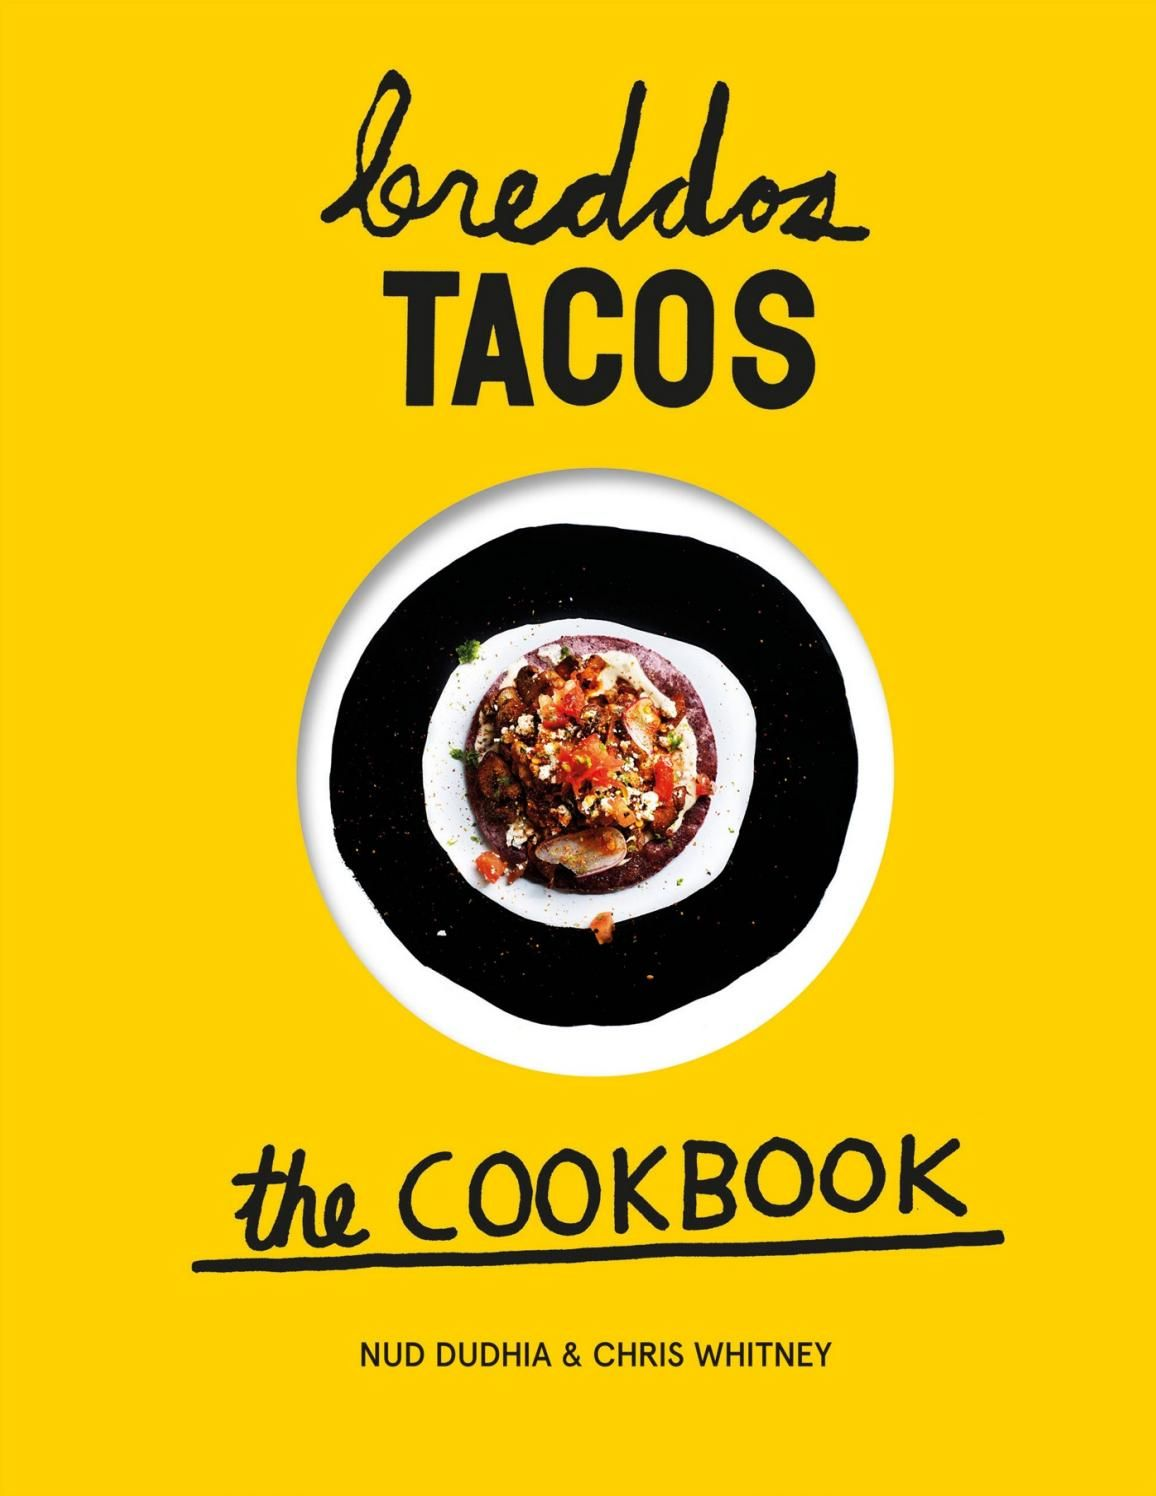 Breddos tacos the cookbook issuu pdf download 7 pinterest breddos tacos the cookbook issuu pdf download forumfinder Choice Image